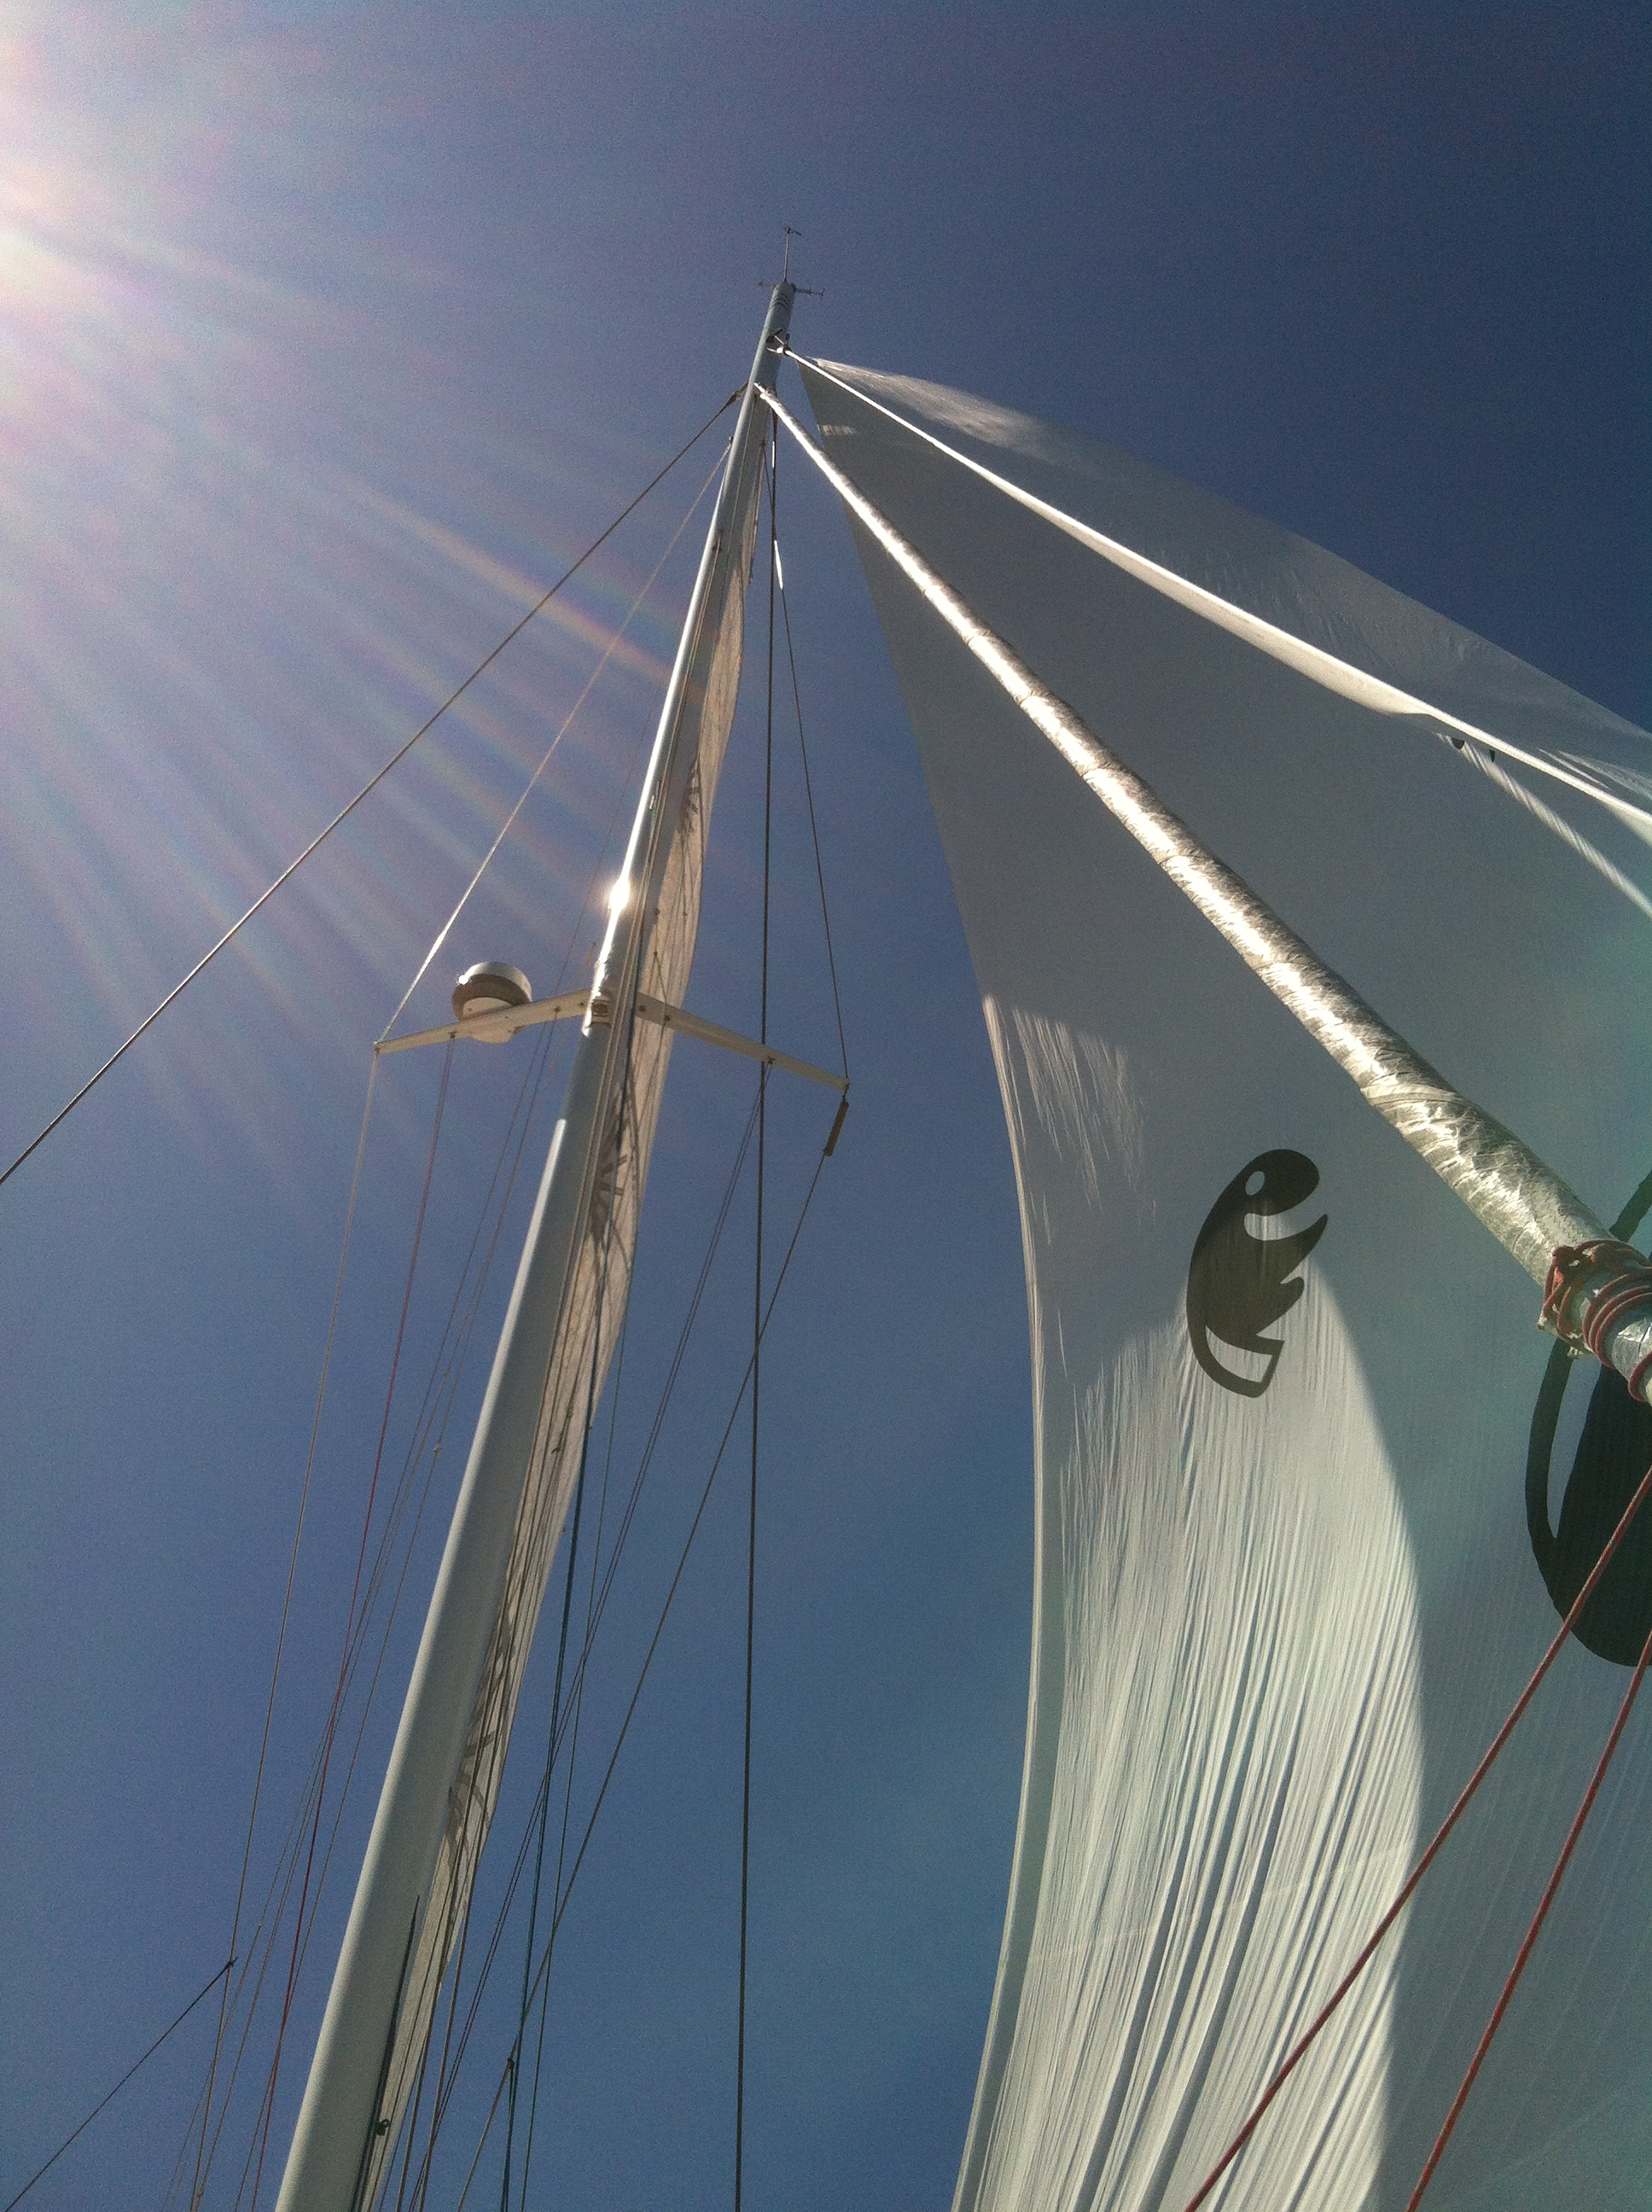 hight resolution of outremer 5x under sail with carbon fiber mast rotated